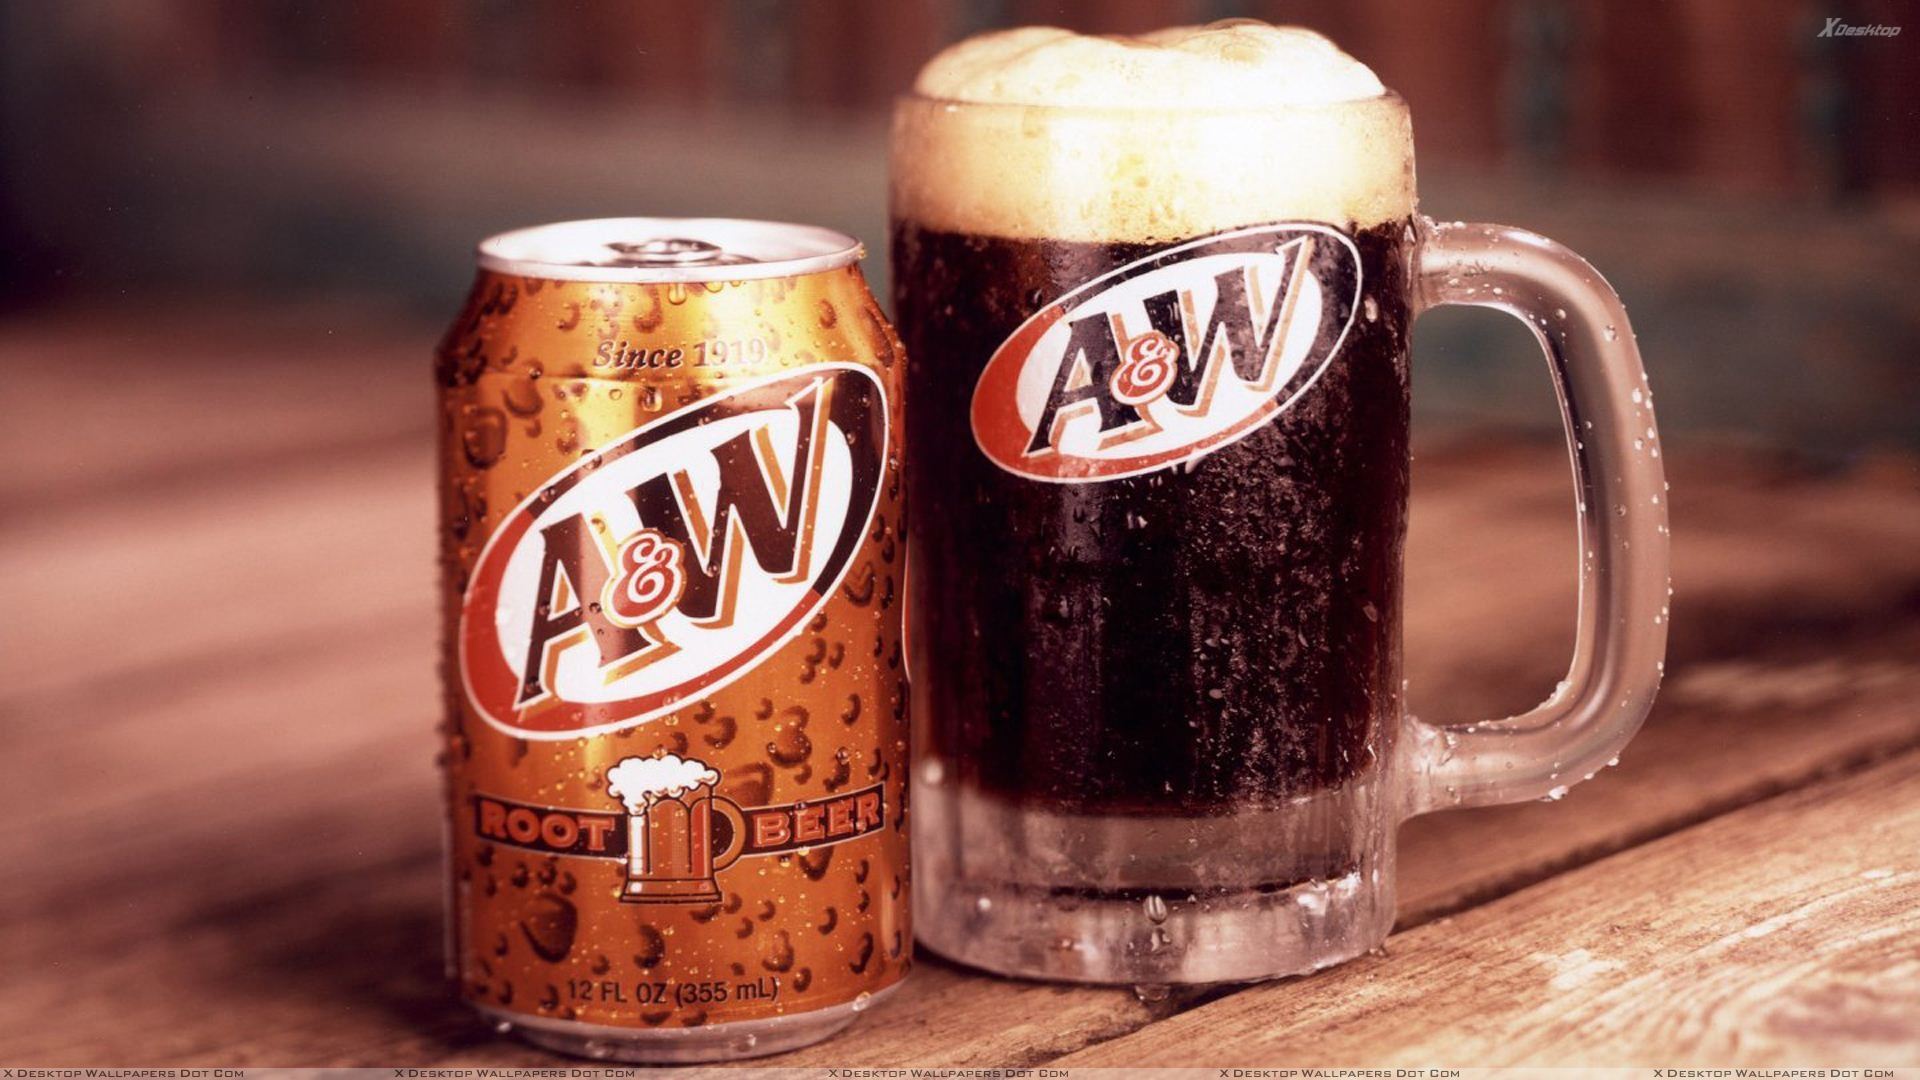 A W Delicious Root Beer Fresh Drink In Summer Holiday